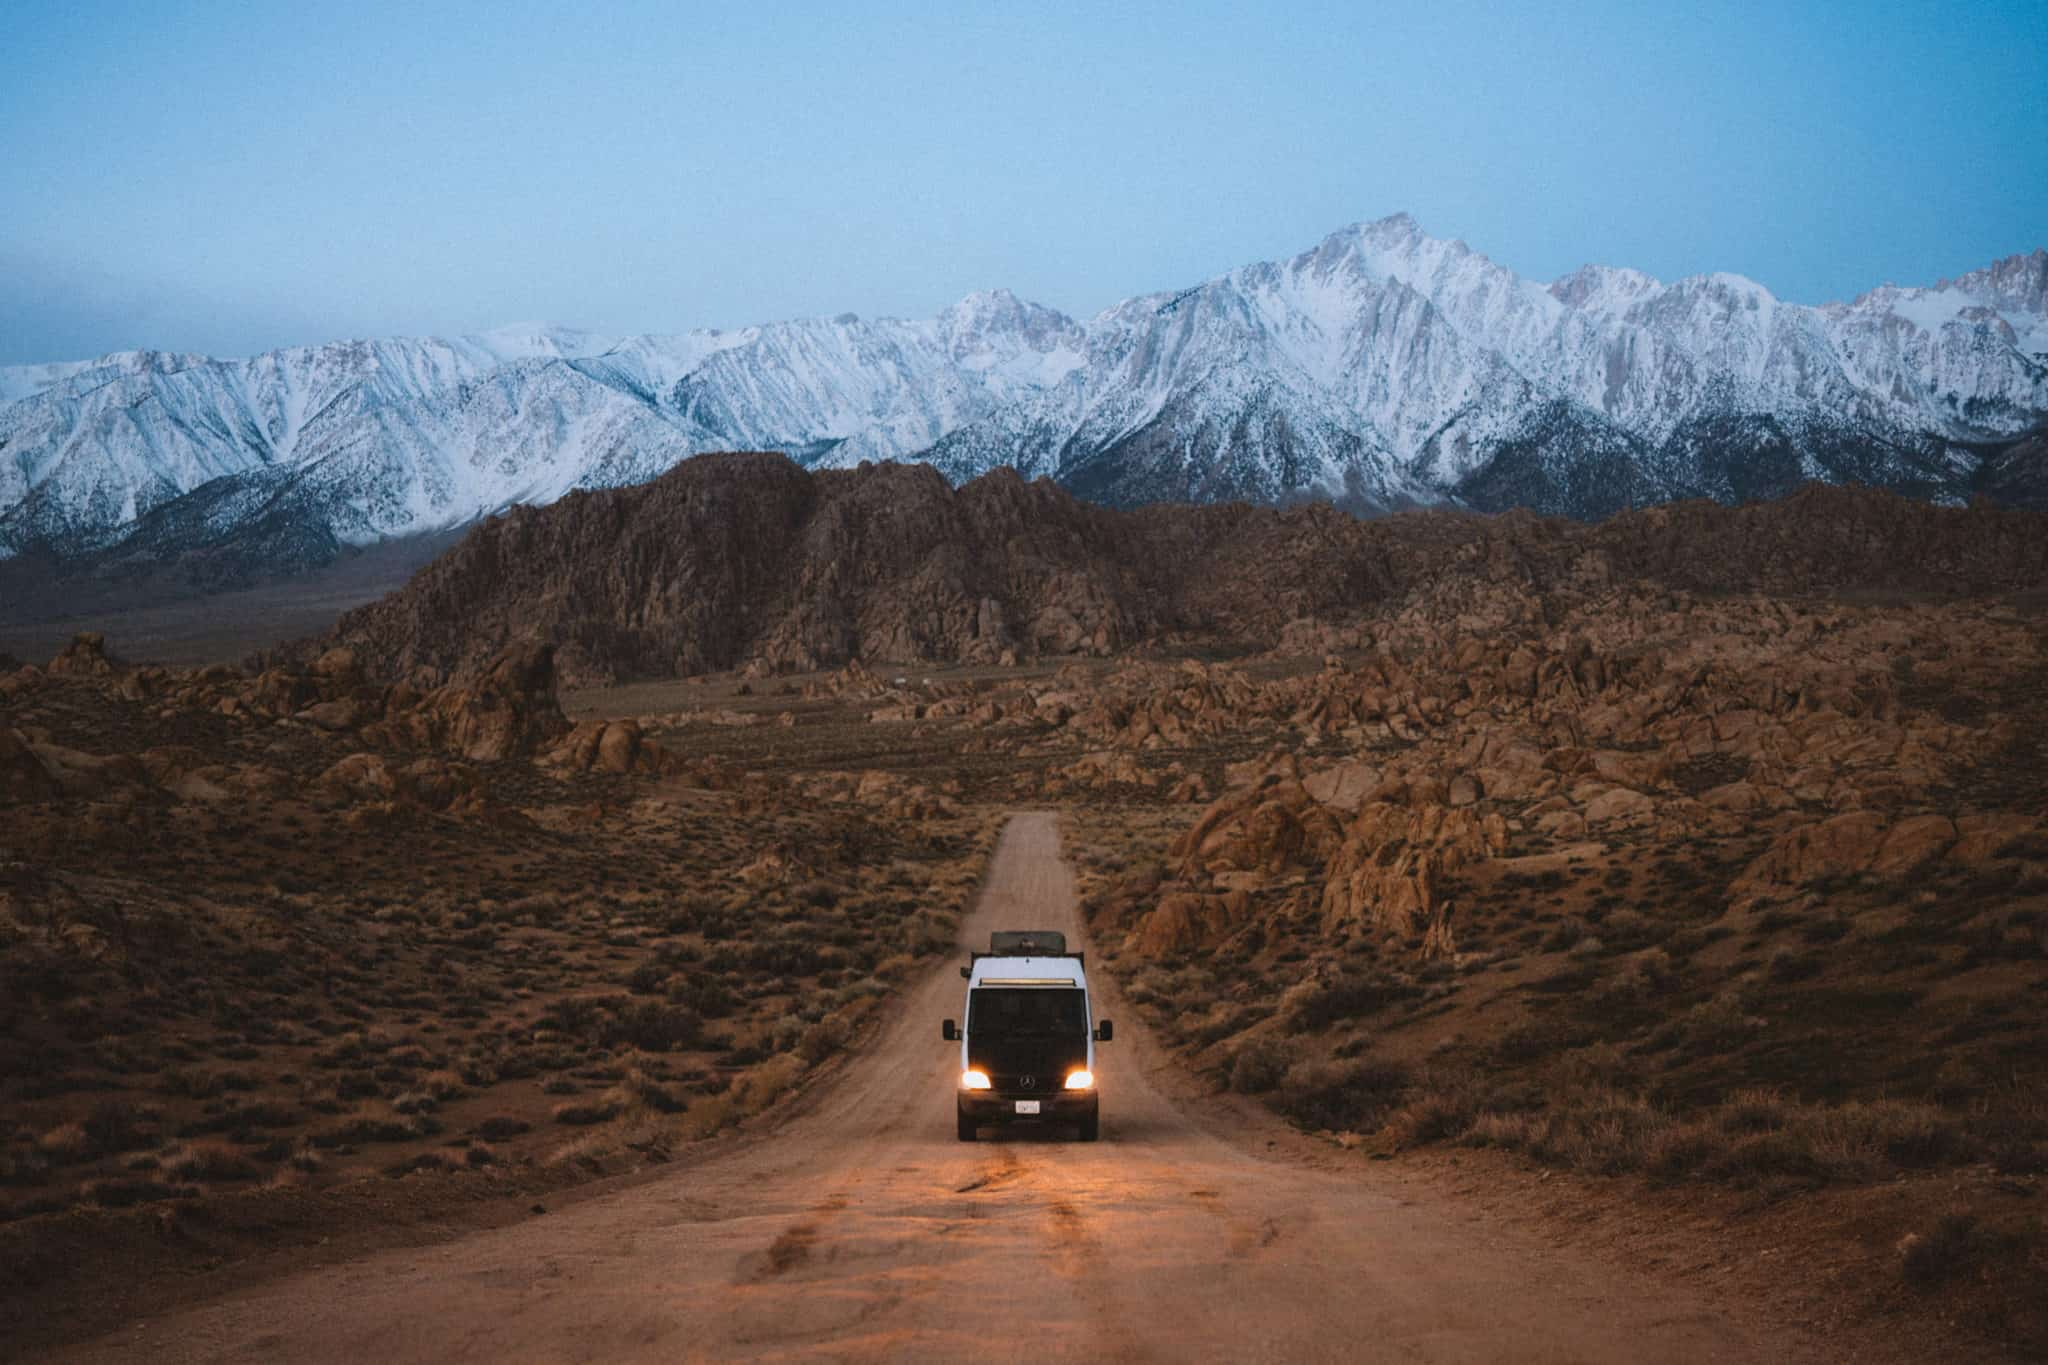 How To Reach The Insta-Famous Alabama Hills Movie Road For Your Next Desert Photo-Op